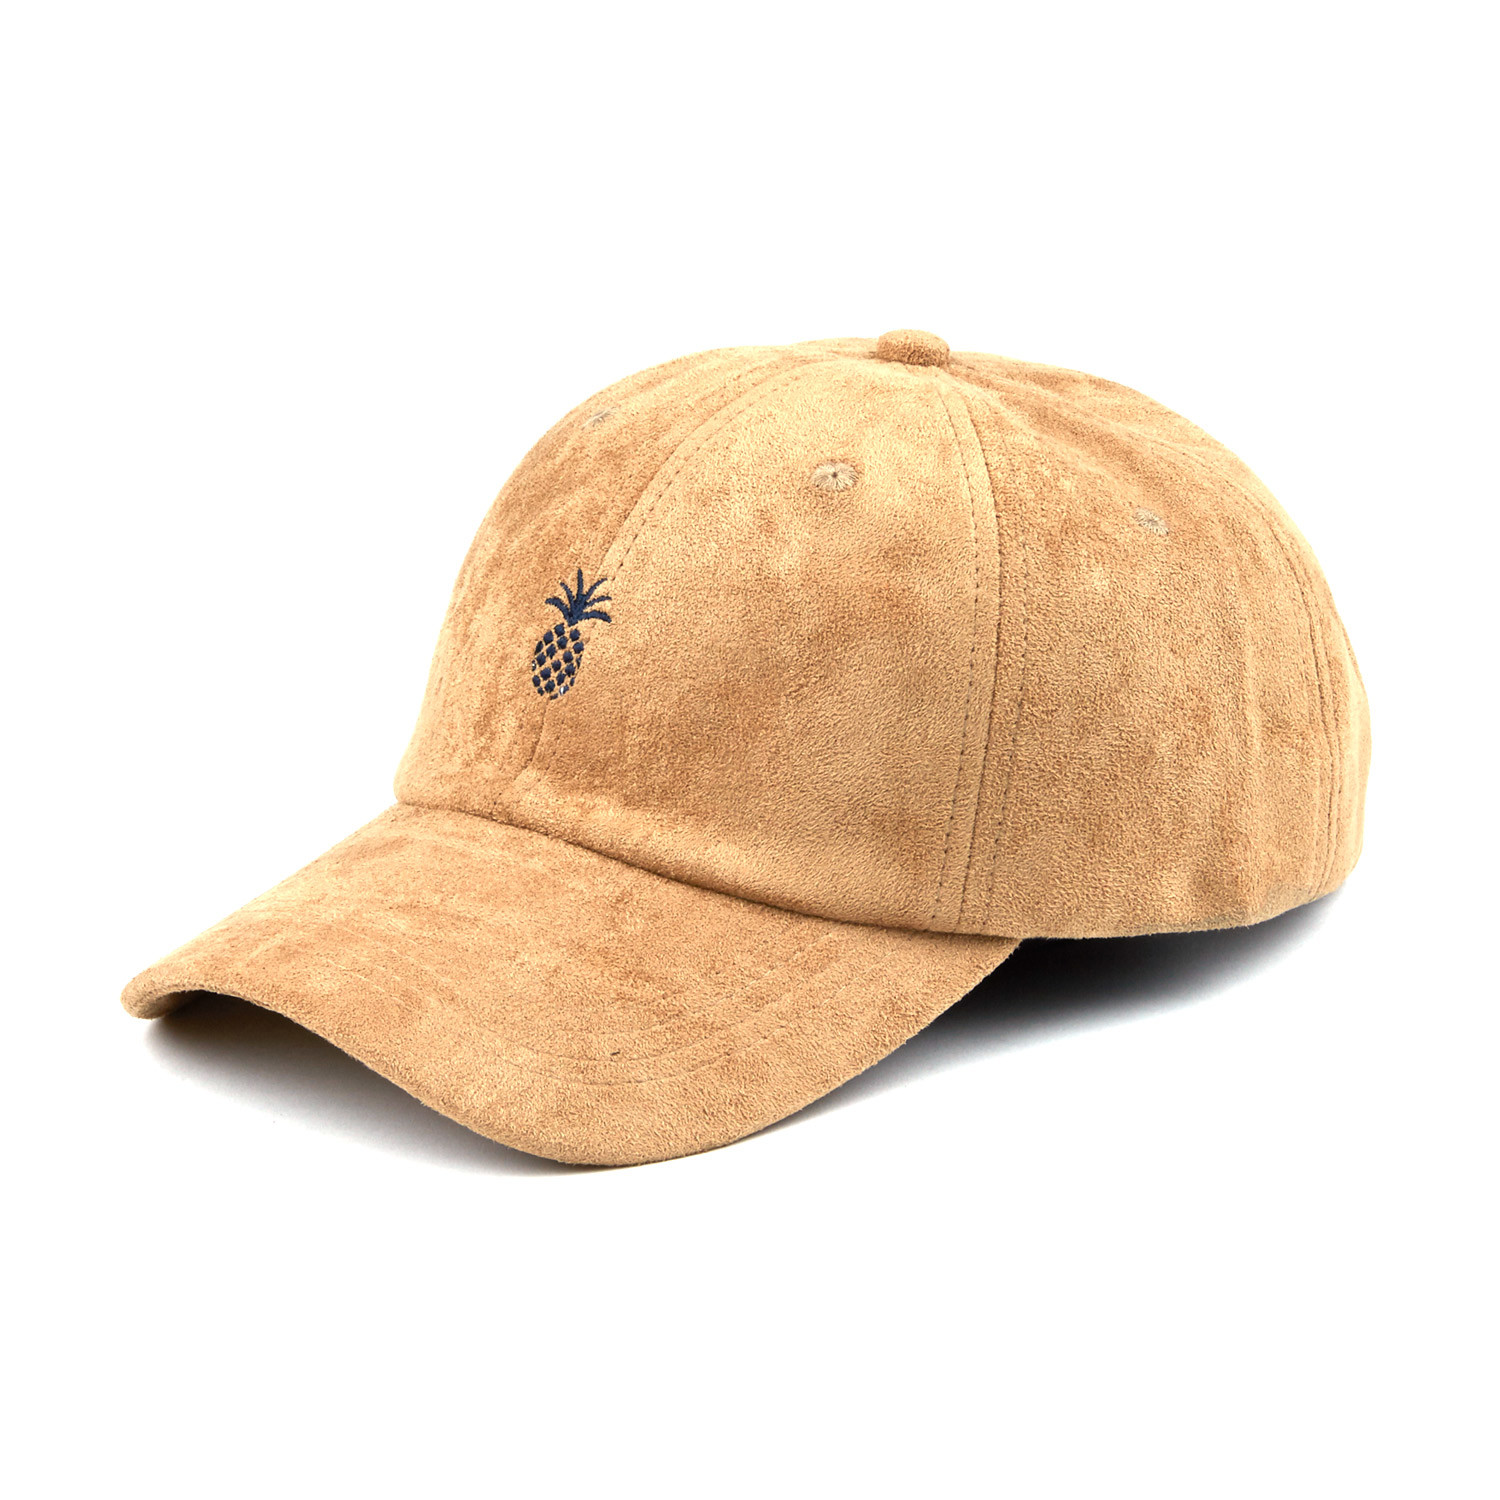 A6bb678baf47073f75b261f81979a3e8 medium · Pineapple Suede Dad Hat    Camel f1594130d8d